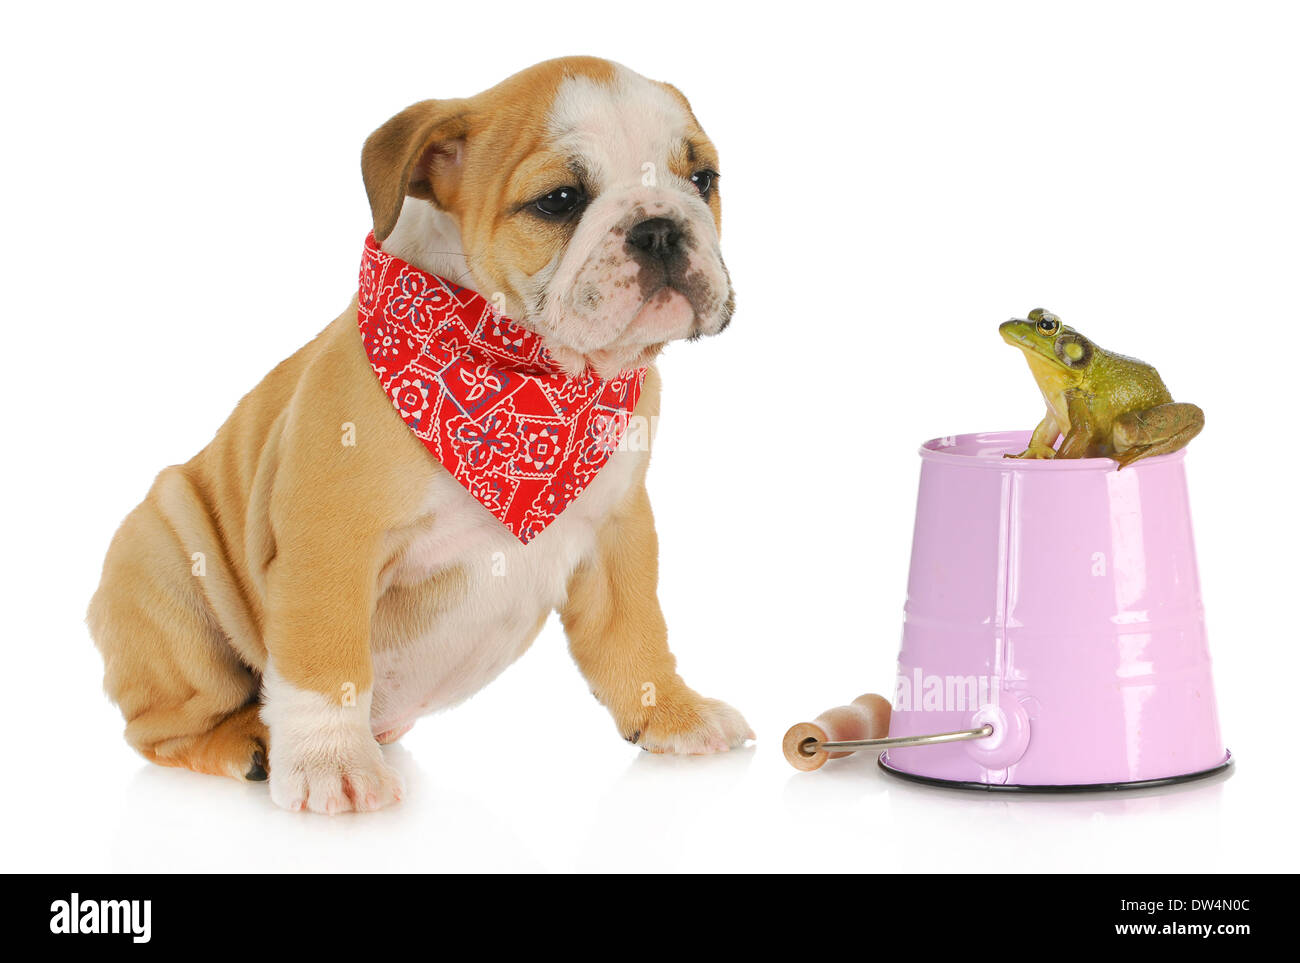 cute puppy with bullfrog - english bulldog looking at bullfrog sitting on a pail isolated on white background - Stock Image